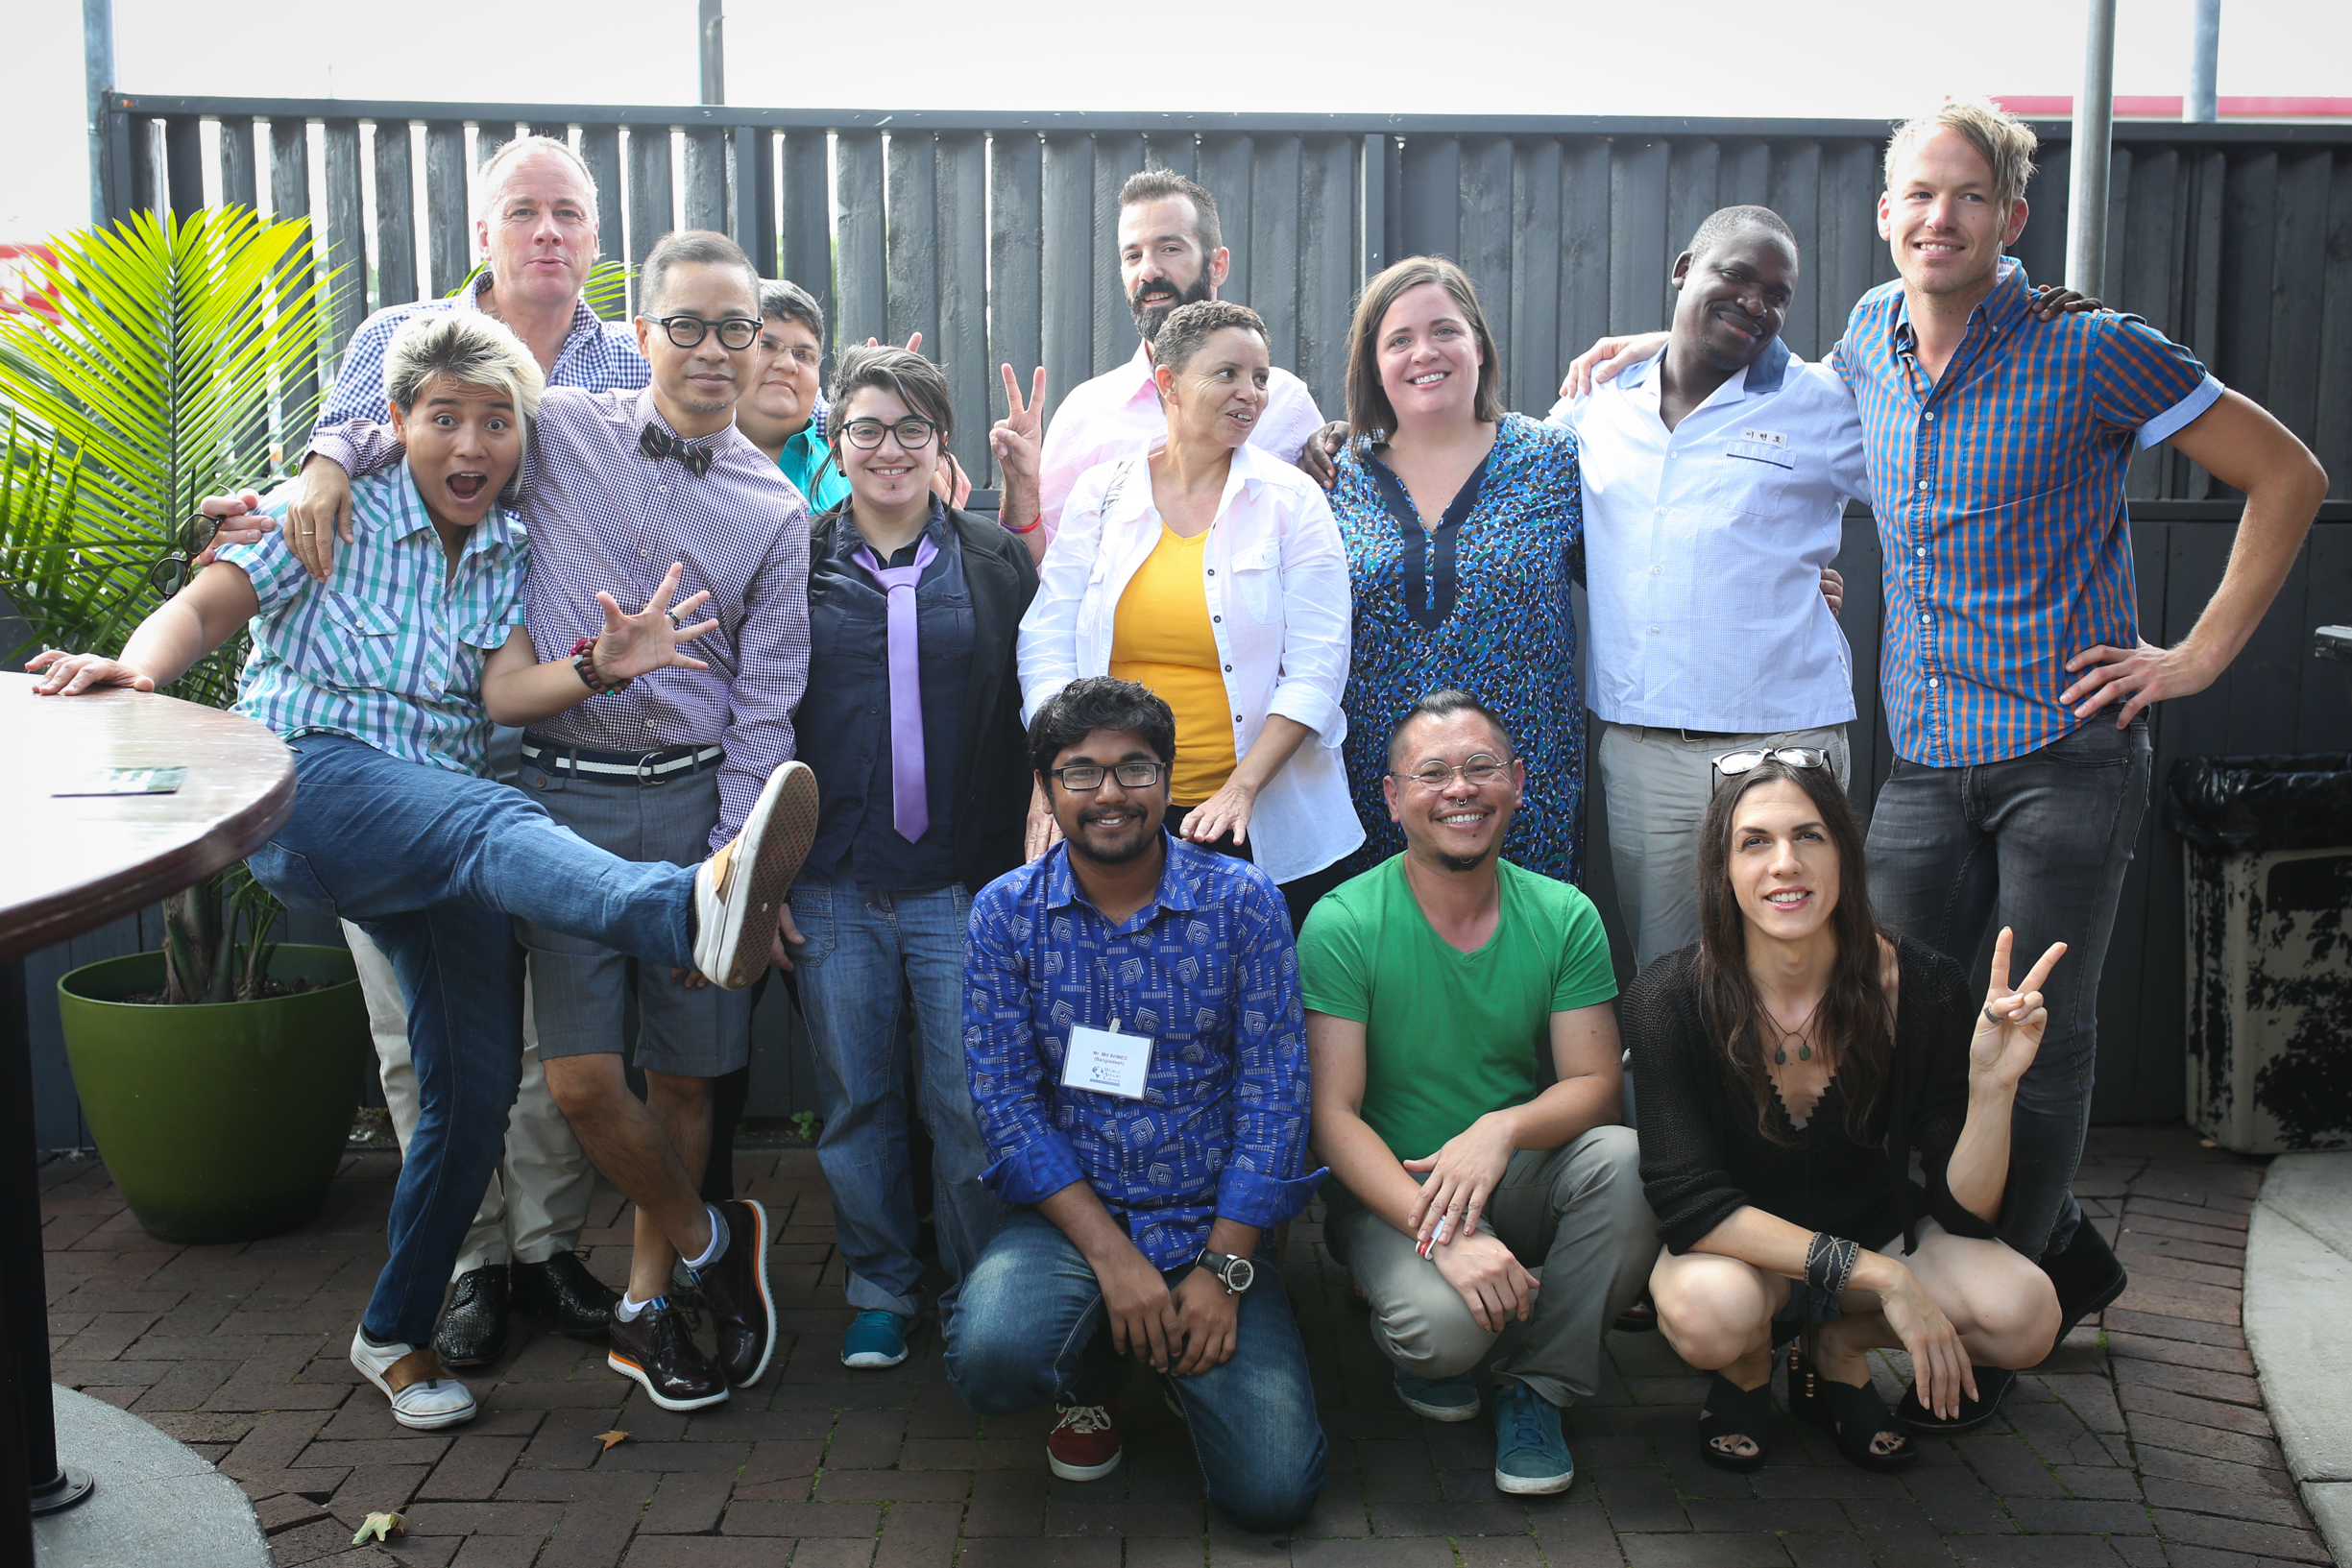 FEVA International LGBT Conference Chill Bar 8.2015 (846 of 13).jpg